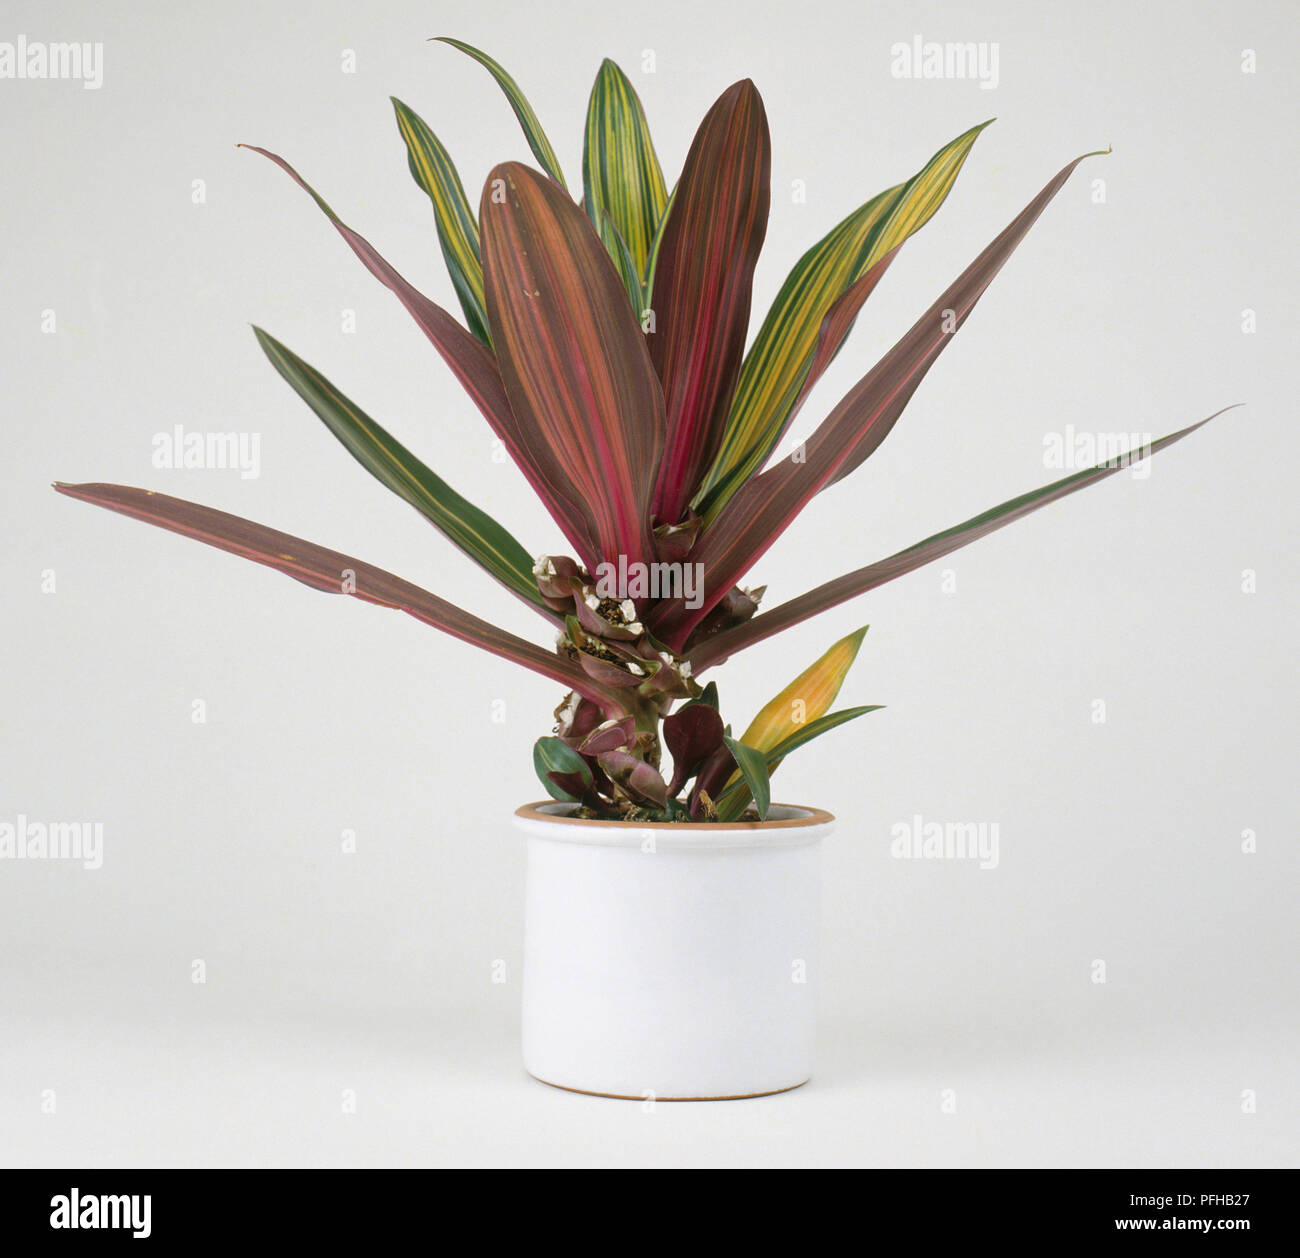 Tradescantia Spathacea Boat Lily Houseplant With Green And Purple